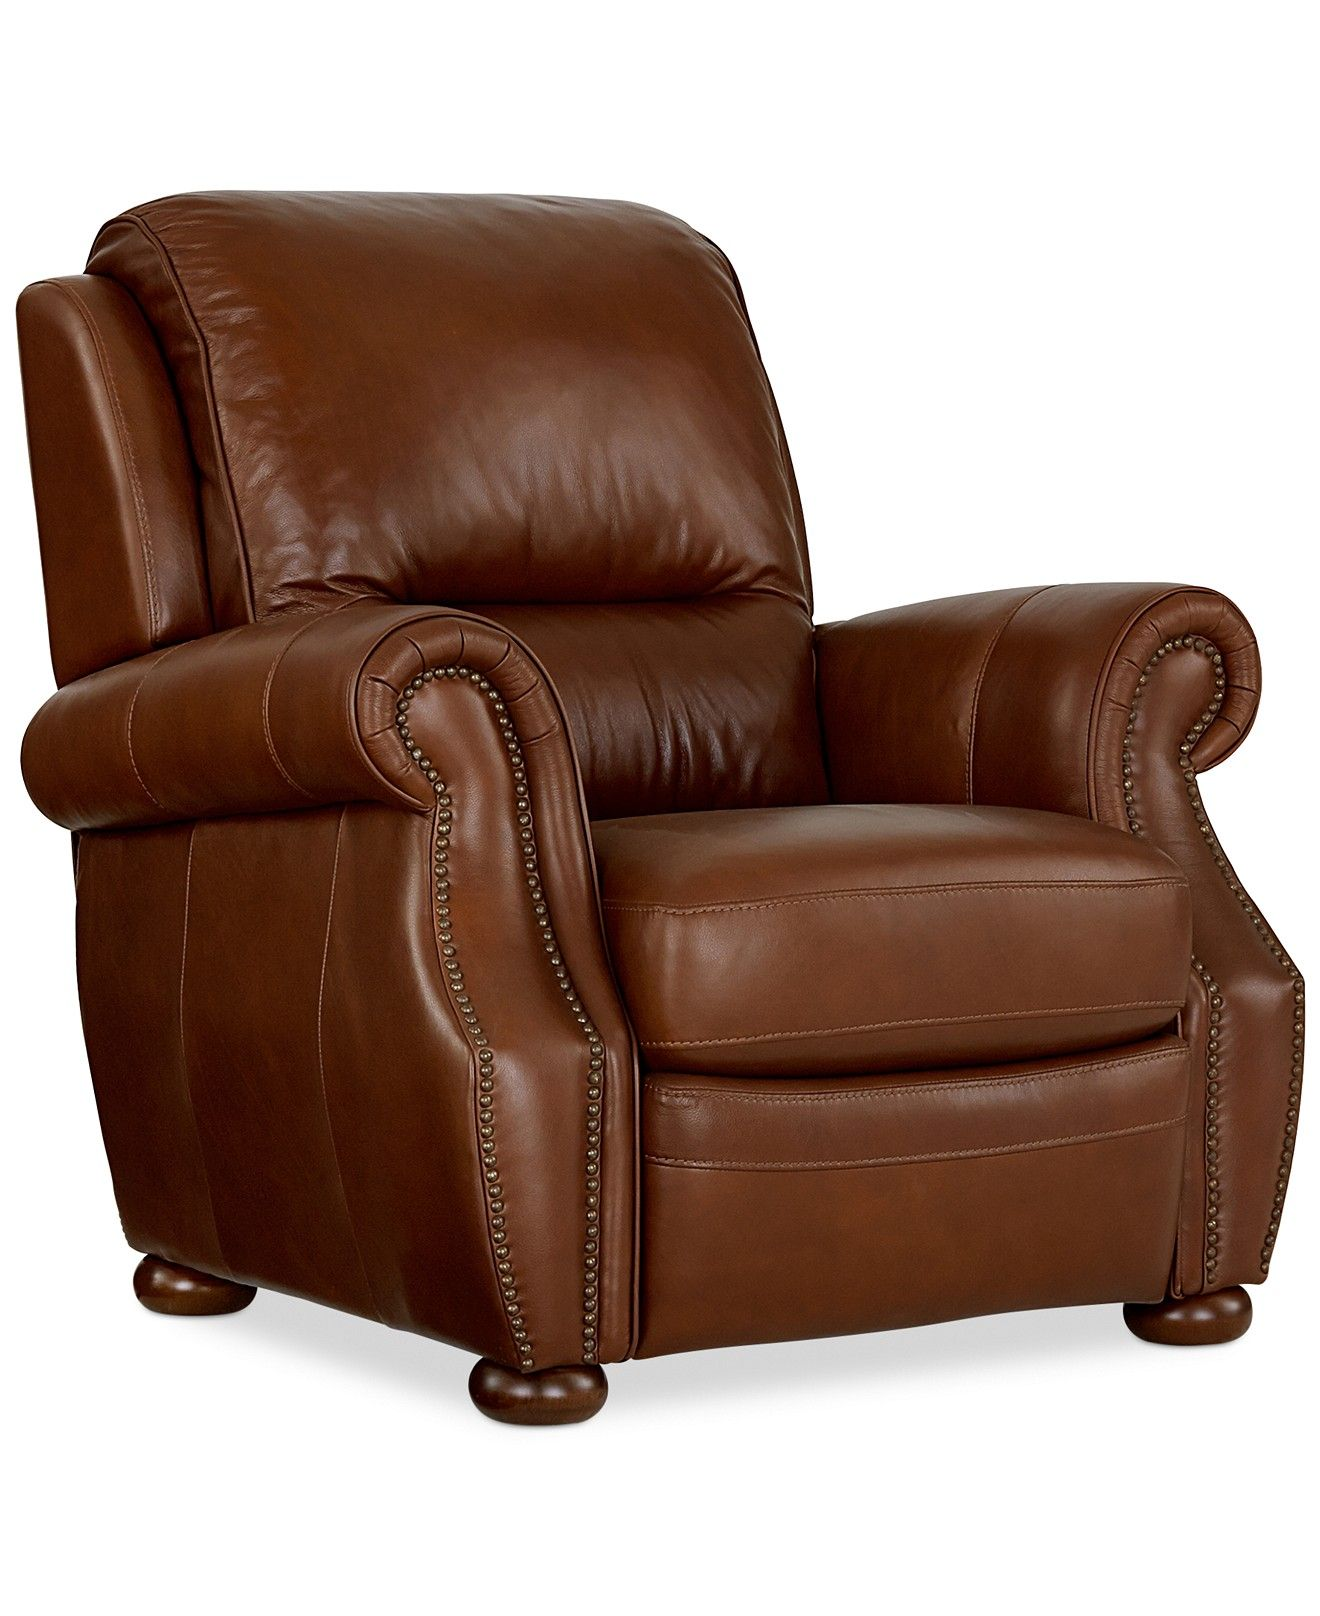 royce leather recliner chair chairs